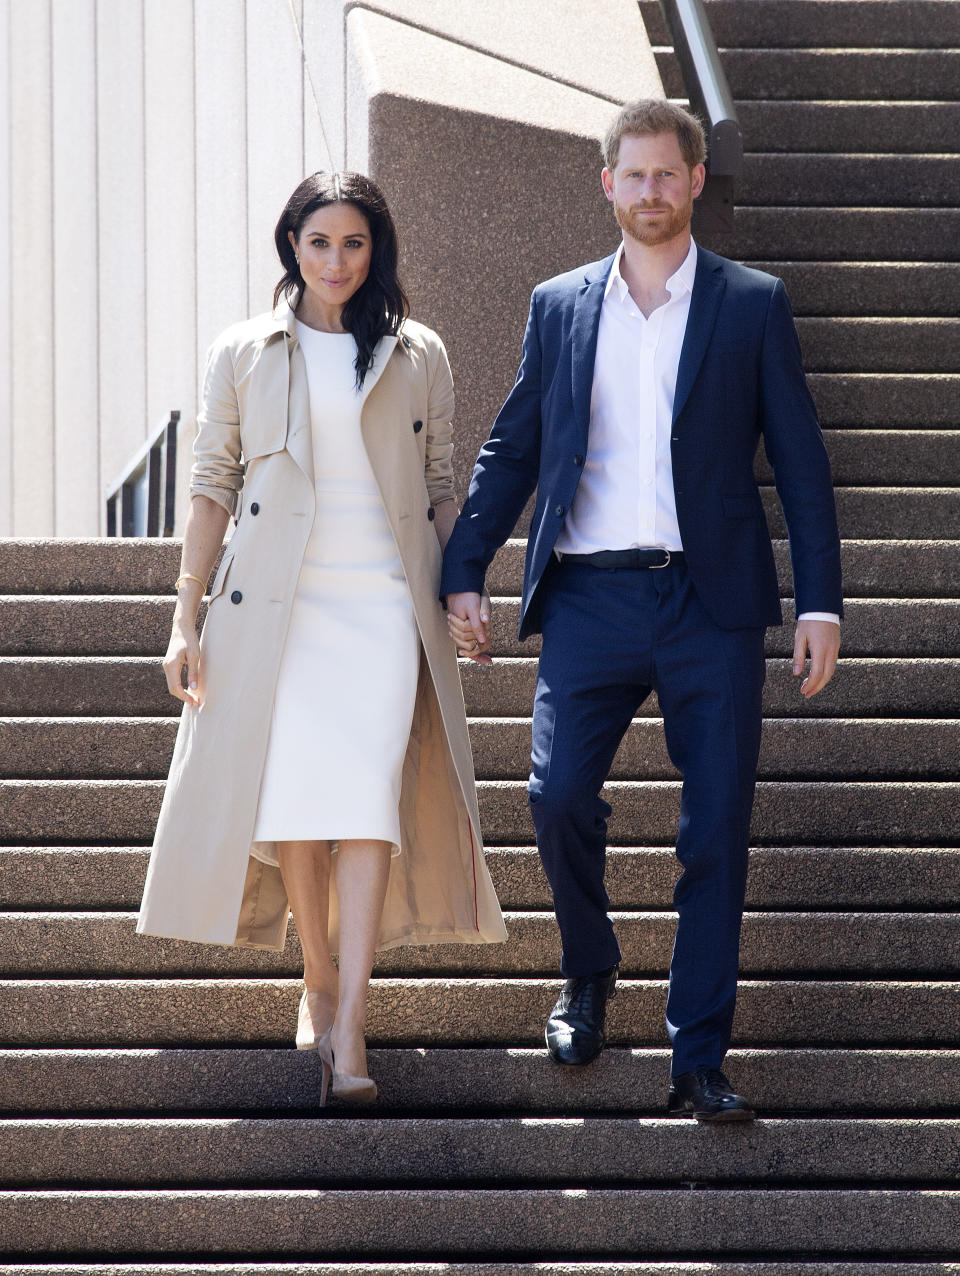 Markle topped a white dress with a beige trench coat when she and Prince Harry arrived in Australia one day after Markle's pregnancy was announced. (Photo: Getty Images)